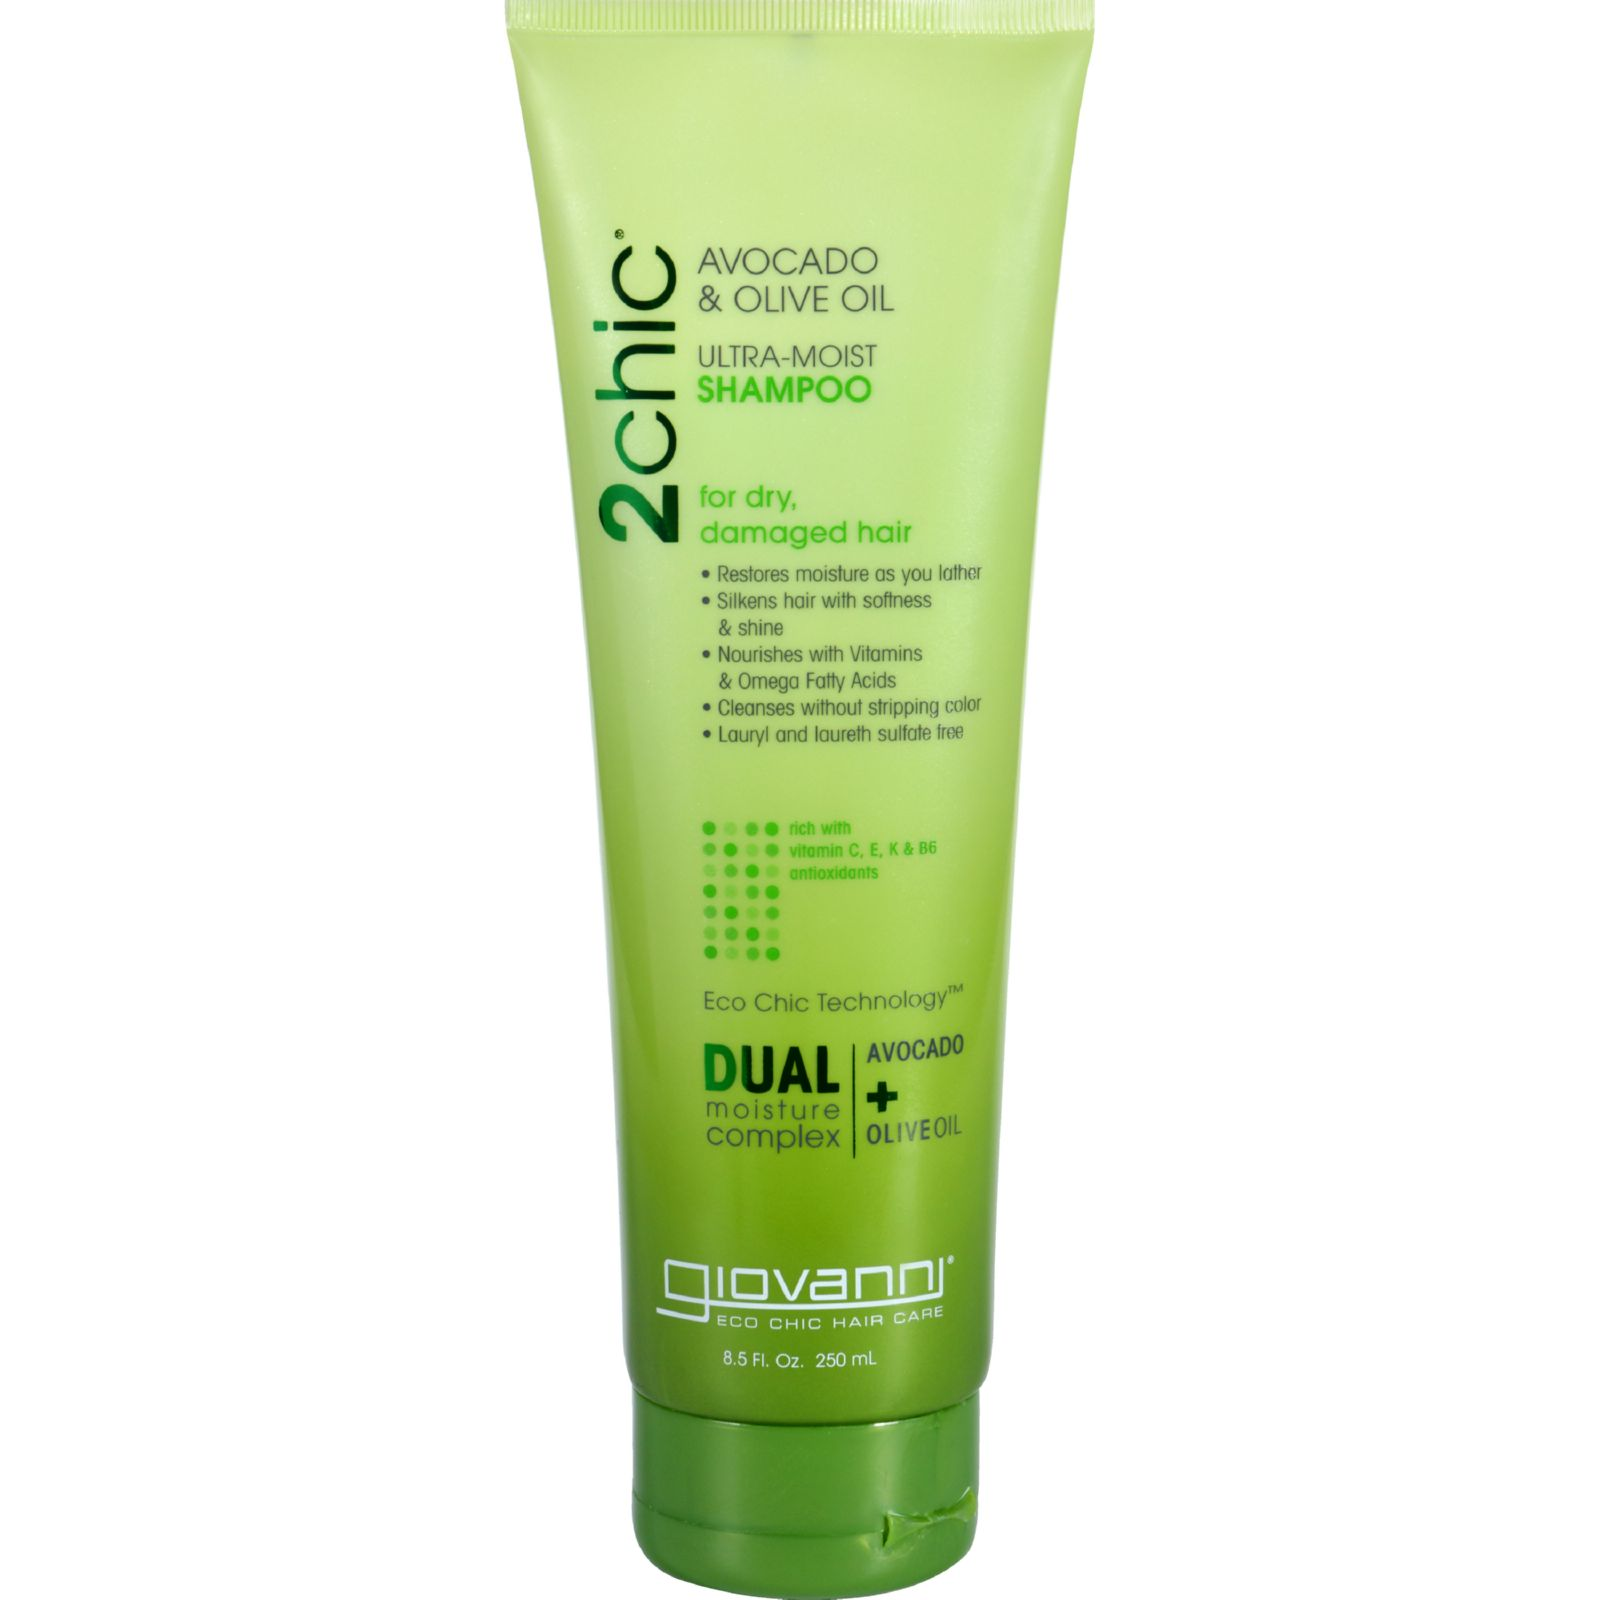 Giovanni Hair Care Products Shampoo  2Chic Avocado and Olive Oil  8.5 oz  HOPE and HOPE